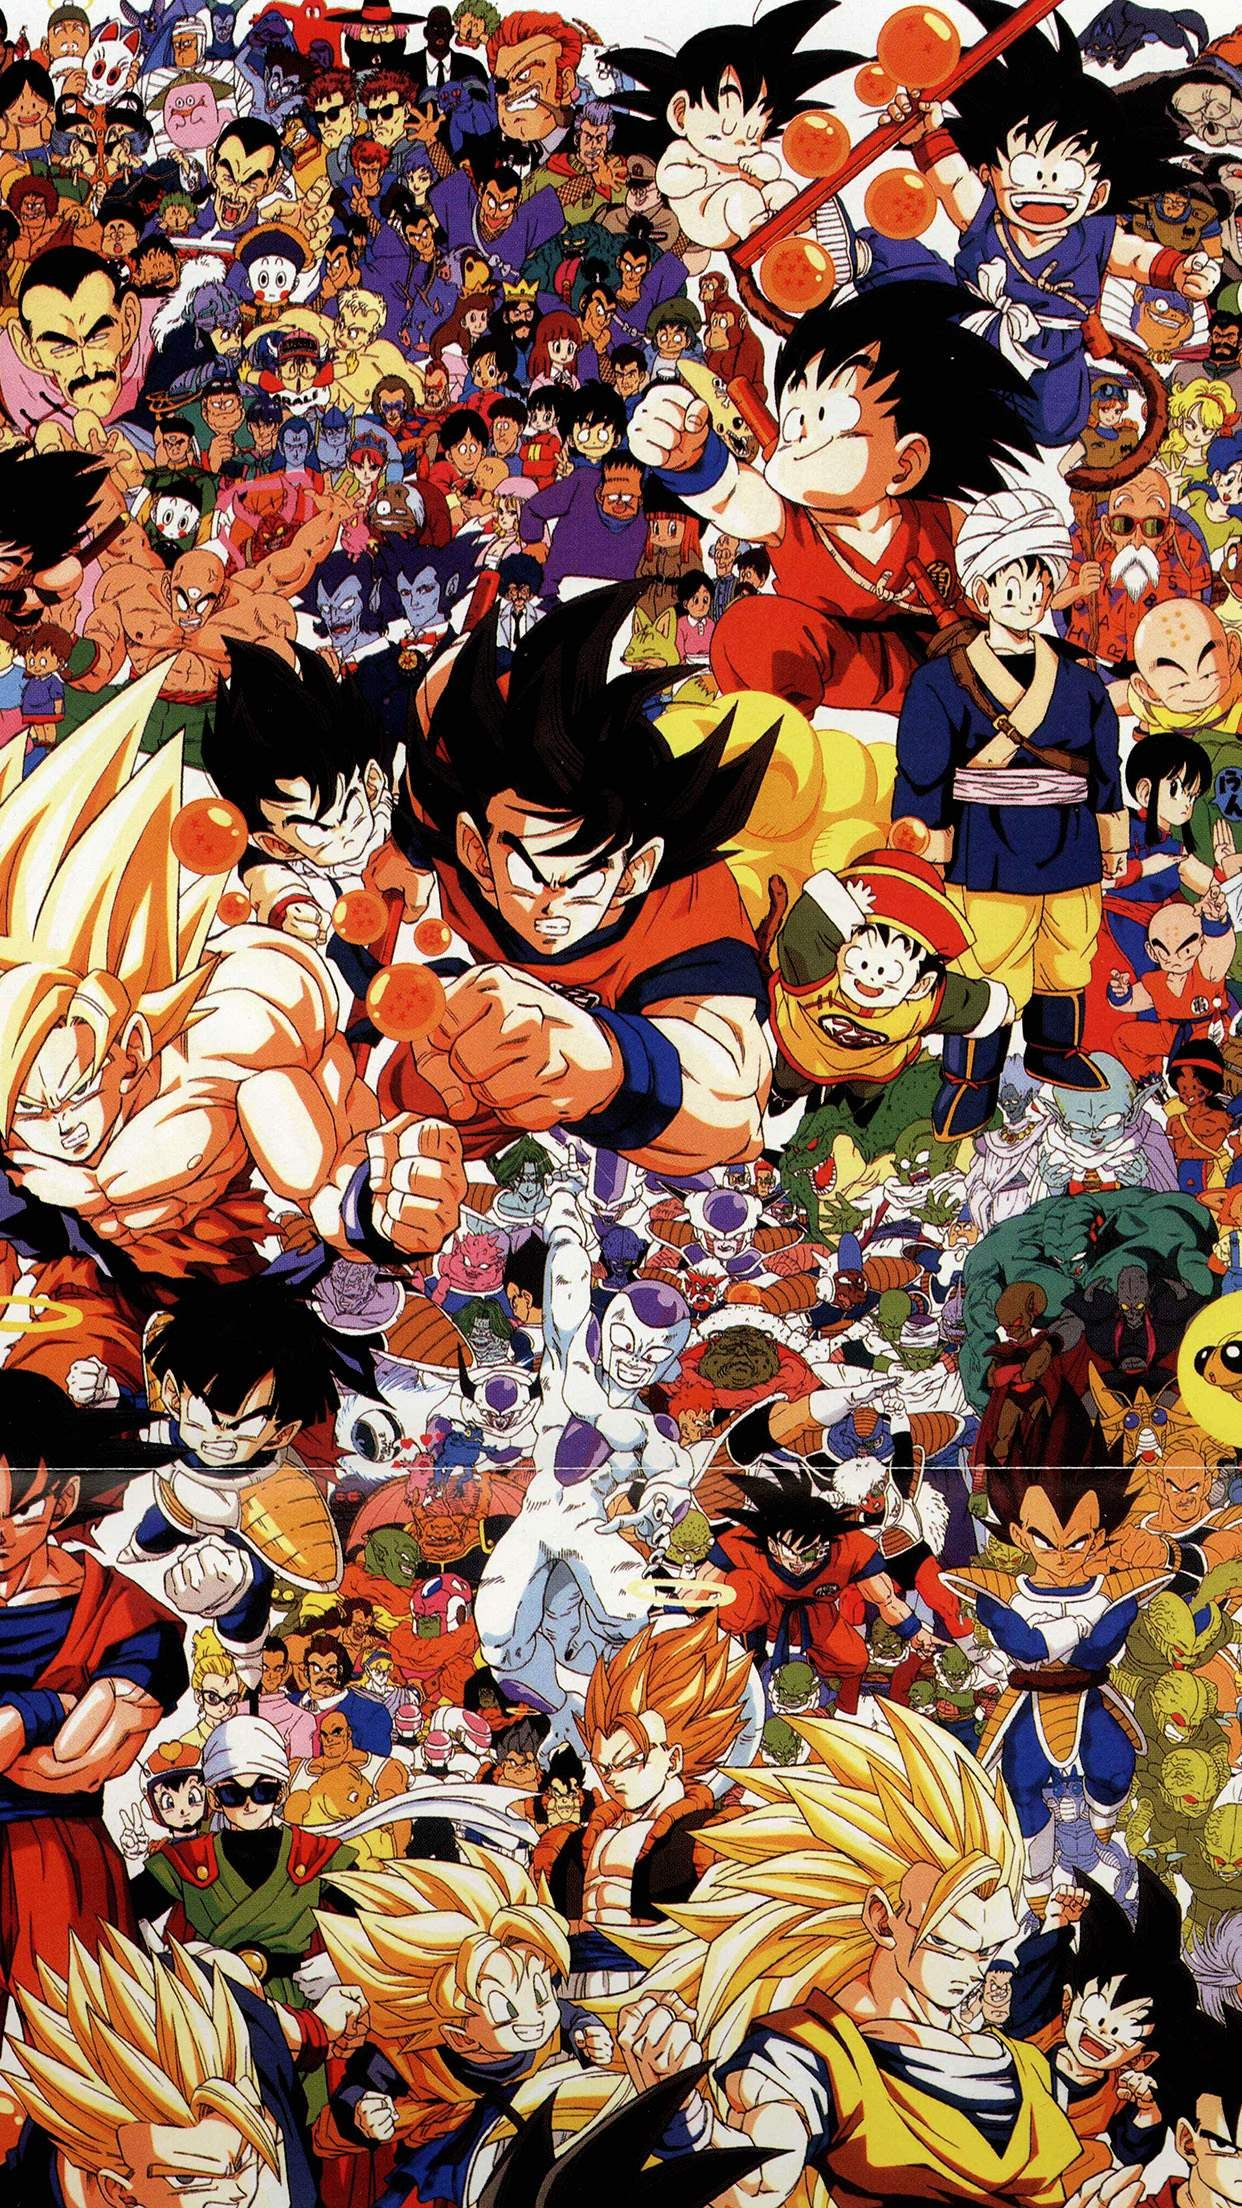 Download Mega Collection Of Cool Iphone Wallpapers Dragon Ball Wallpaper Iphone Anime Dragon Ball Super Anime Dragon Ball